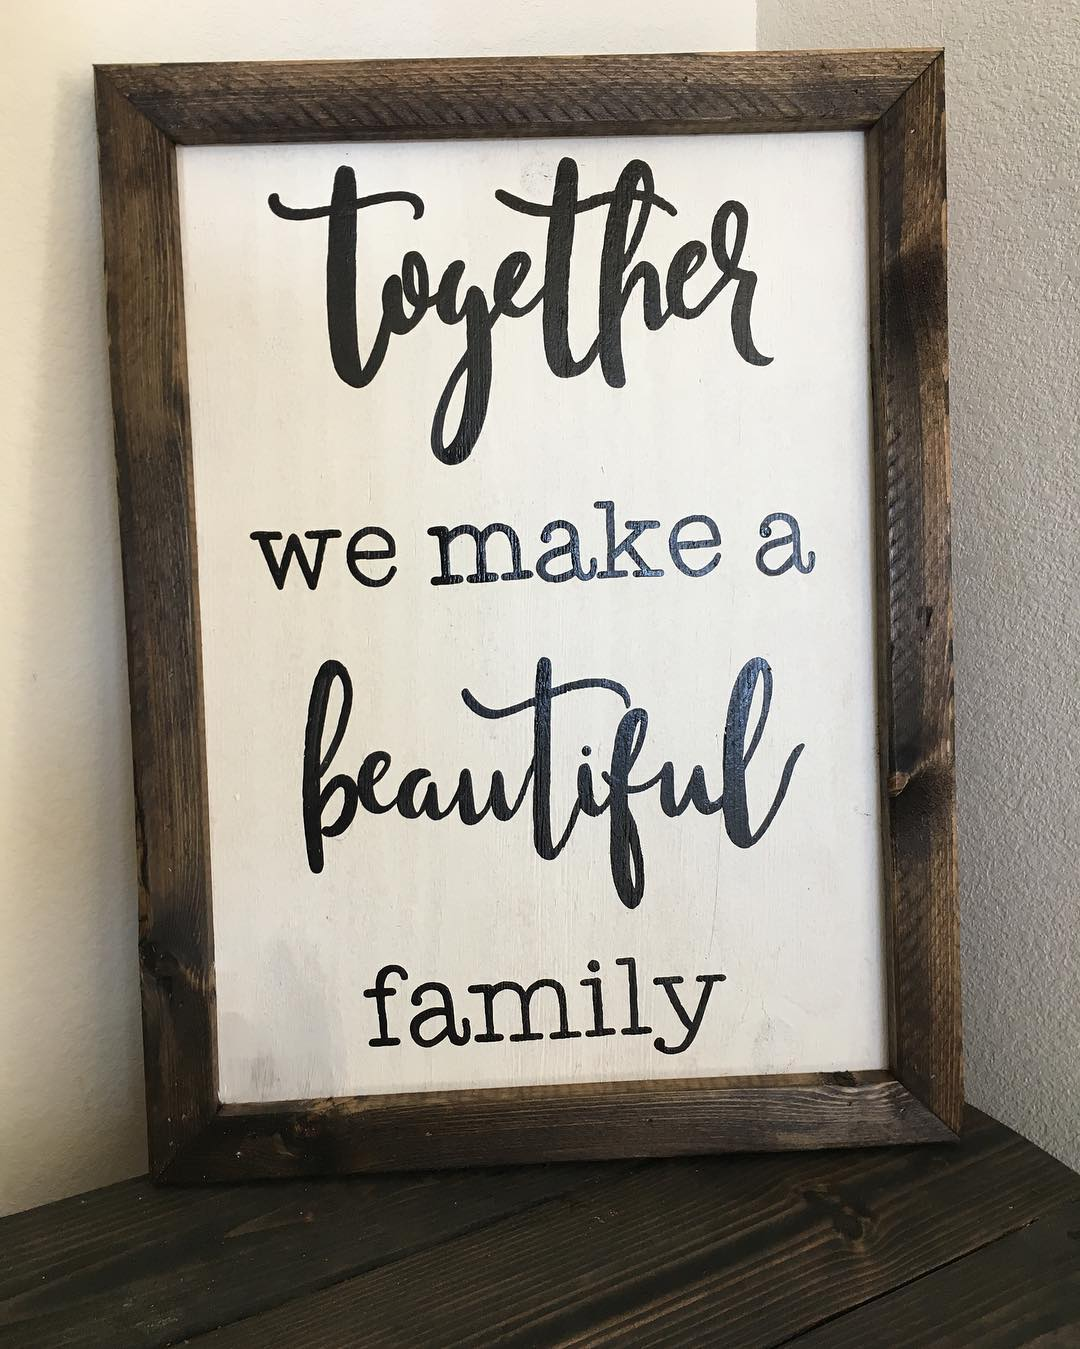 Inspirational Family Quotes: 60 Best And Inspirational Family Quotes